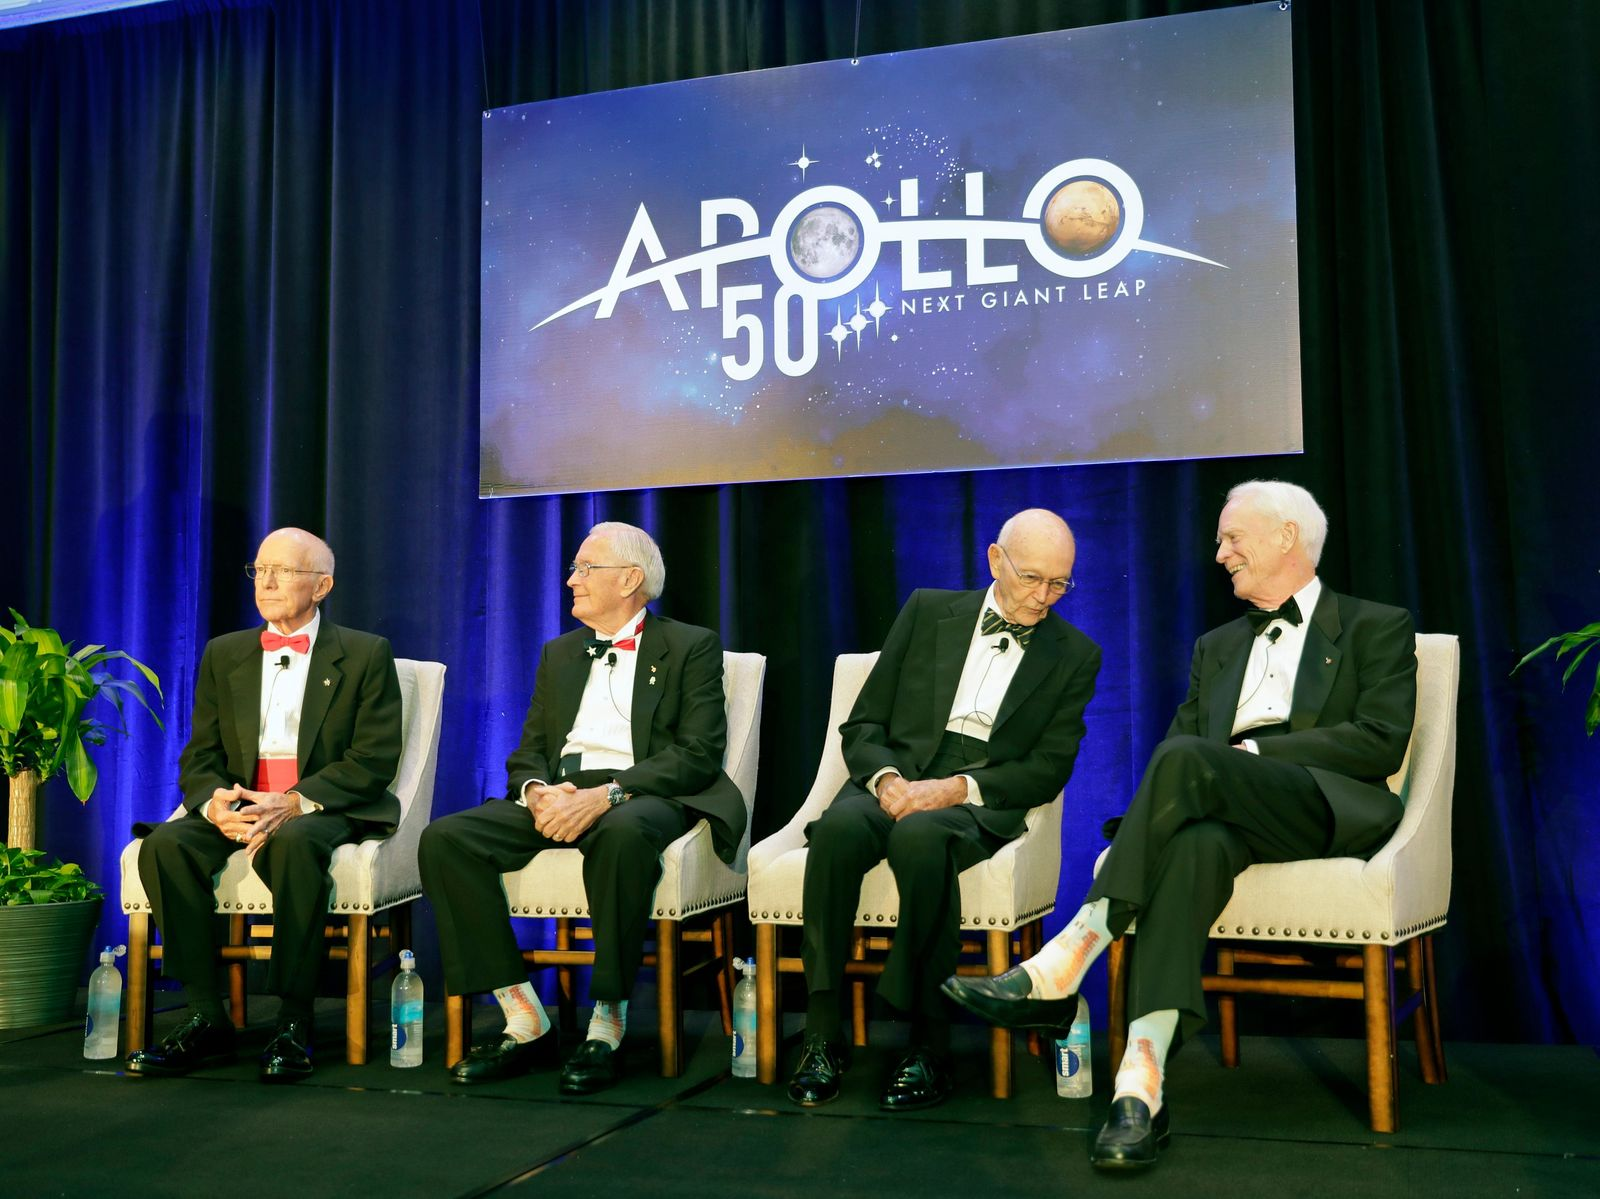 Apollo Legends attend a news conference from left, Gerry Griffin, Apollo flight director, and Charlie Duke, Apollo 16 astronaut, take their seats as Mike Collins, Apollo 11 astronaut admires Apollo 9 astronaut Rusty Schweickart's socks featuring a Saturn V rocket, during a news conference Tuesday, July 16, 2019, in Cocoa Beach, Fla. (AP Photo/John Raoux)